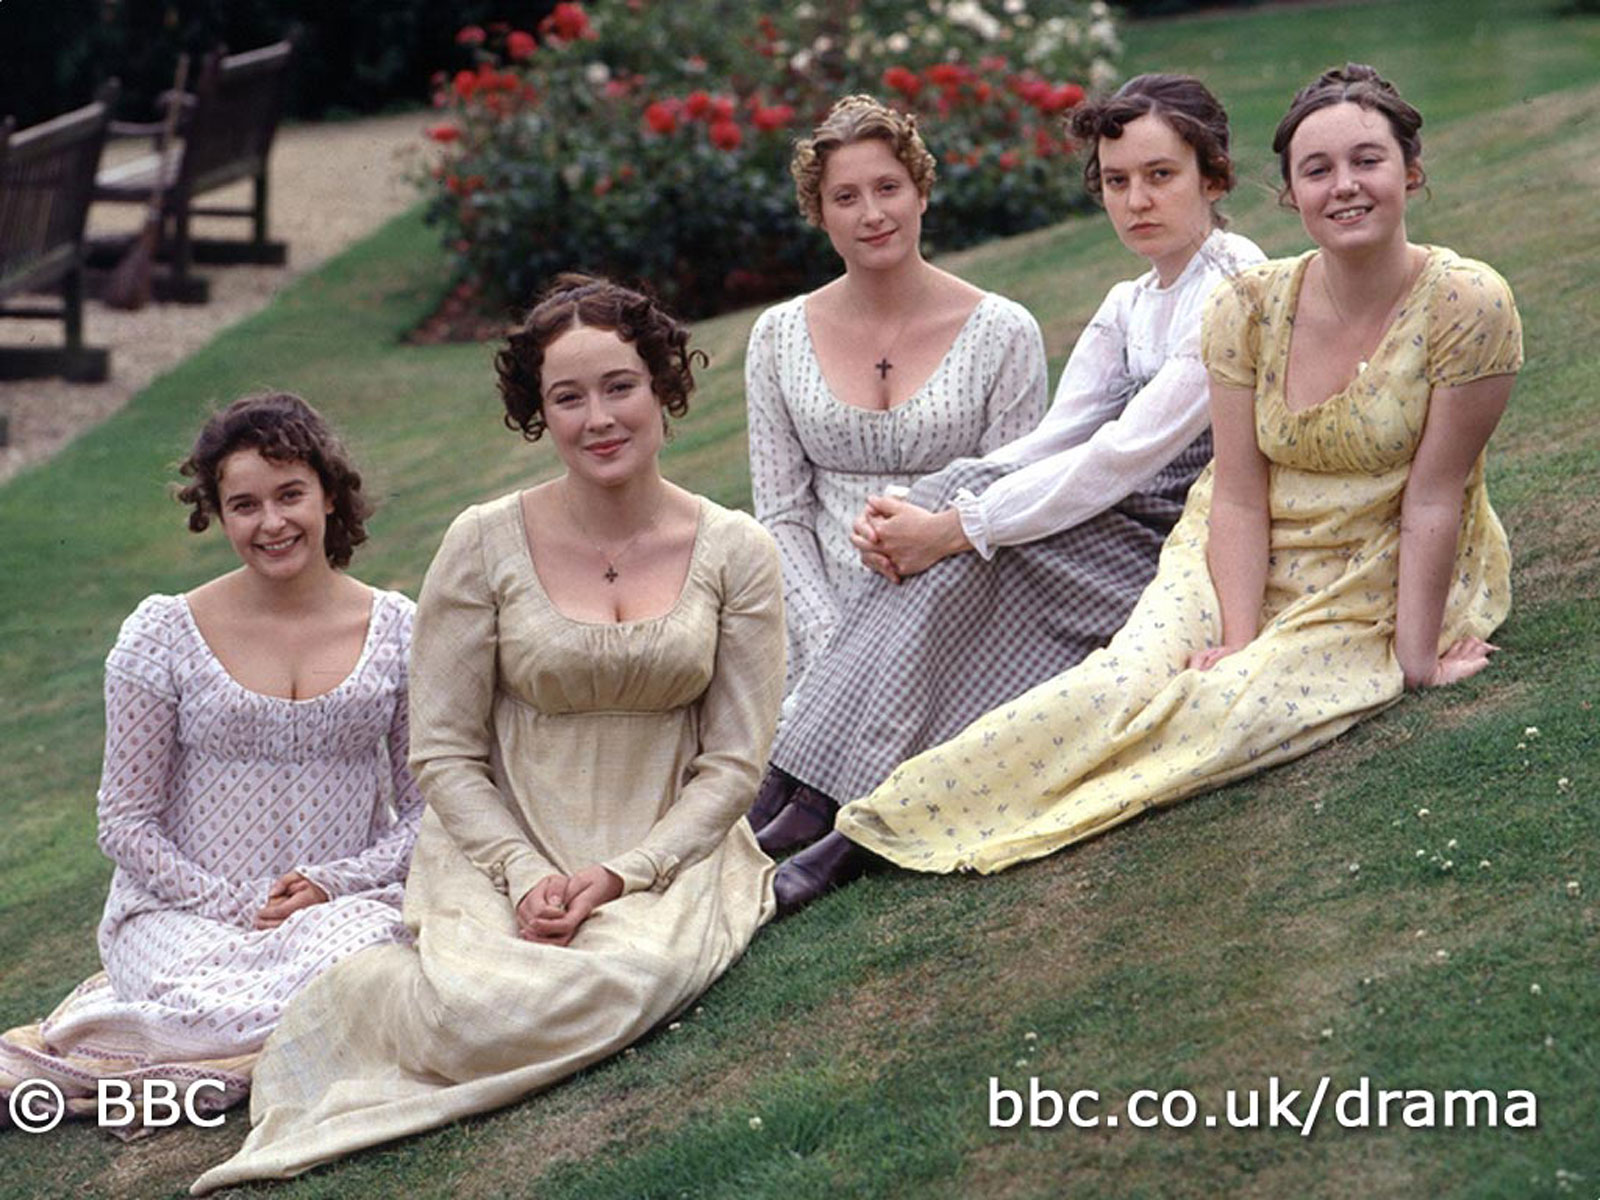 http://www.bbc.co.uk/drama/content/images/2007/03/22/bennets_1600x1200.jpg